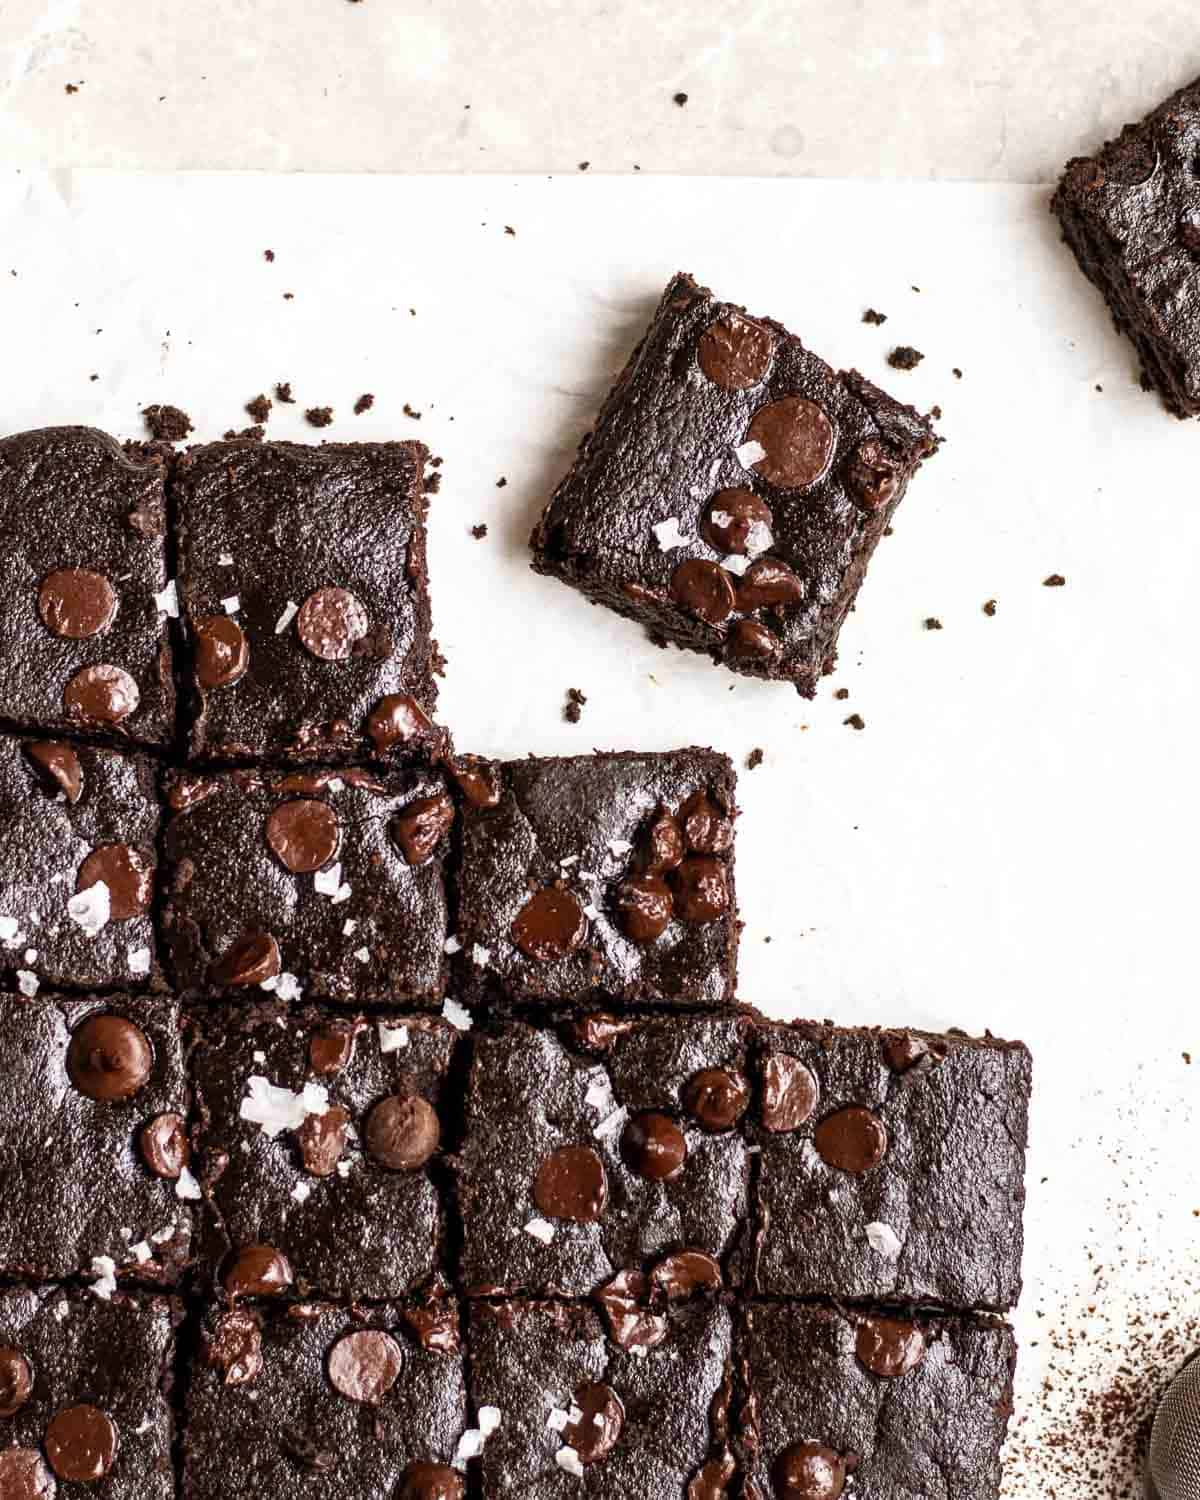 A tray of brownies arranged on a parchment paper topped with sea salt flakes.